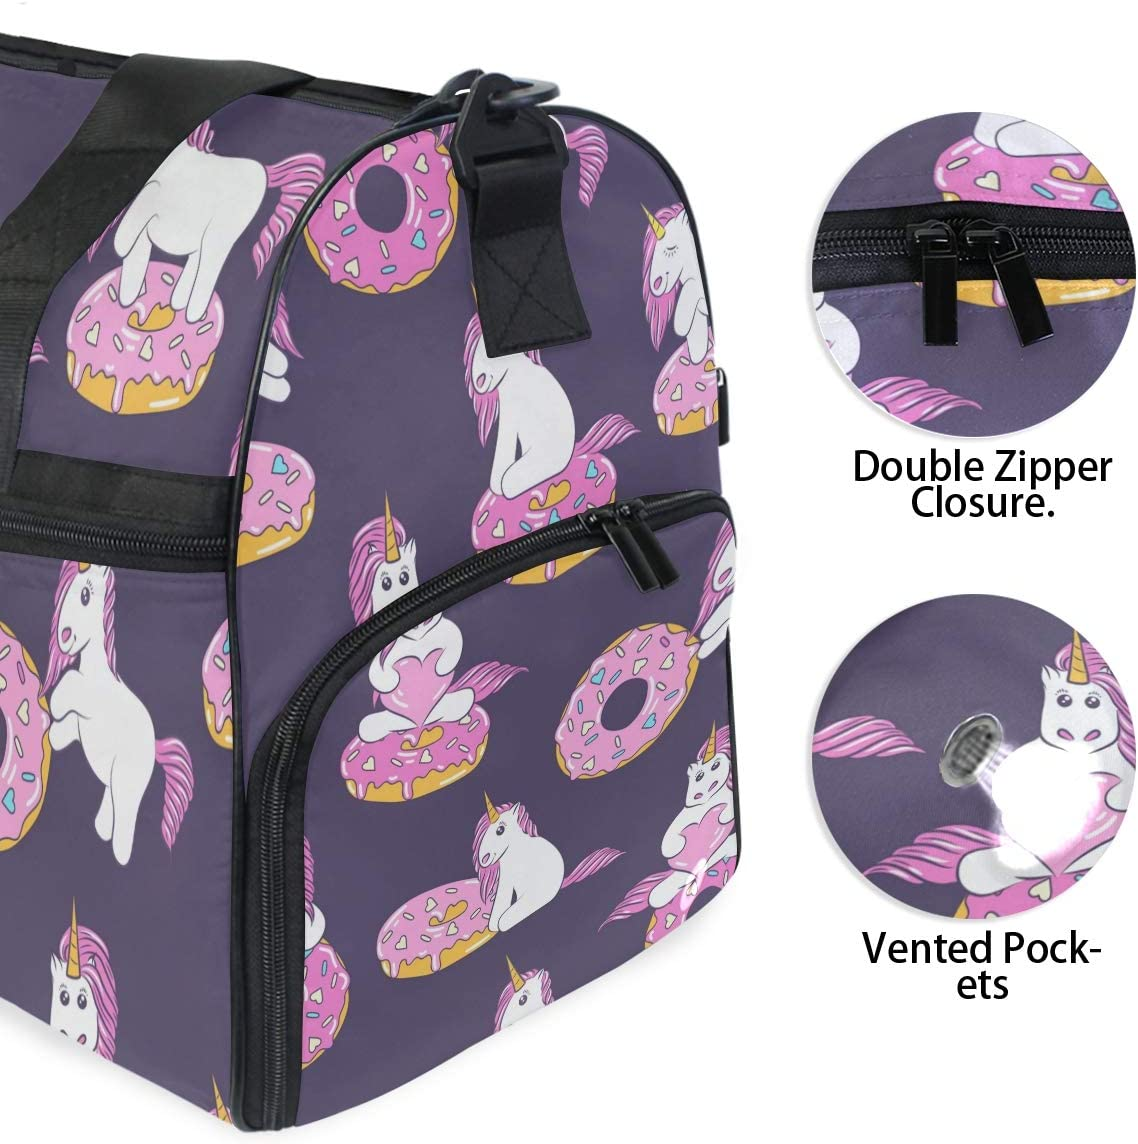 Travel Duffels Cute Baby Unicorns And Donuts Duffle Bag Luggage Sports Gym for Women /& Men